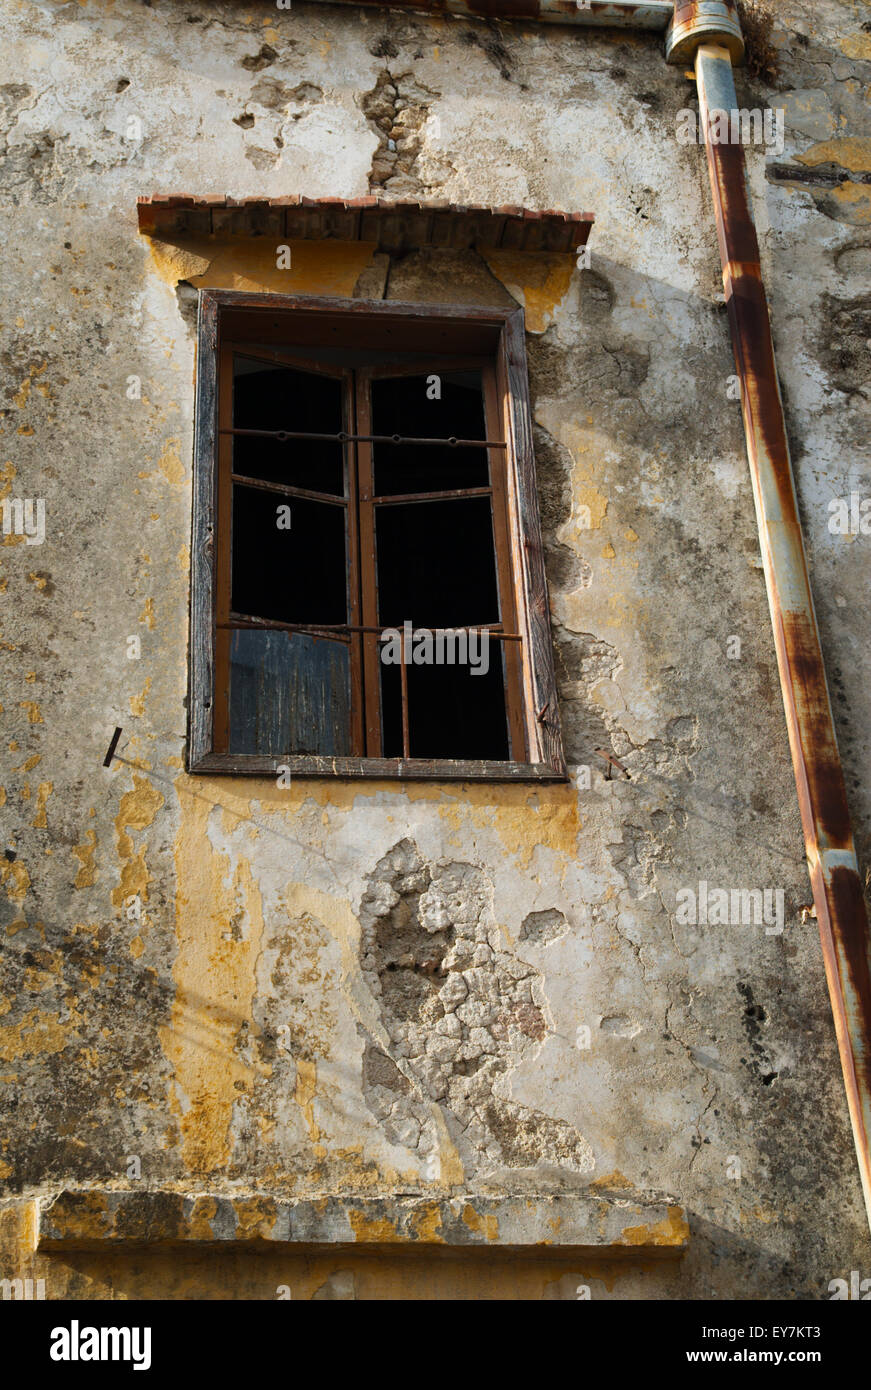 Window and Drainpipe, Rhodes, Greece - Stock Image